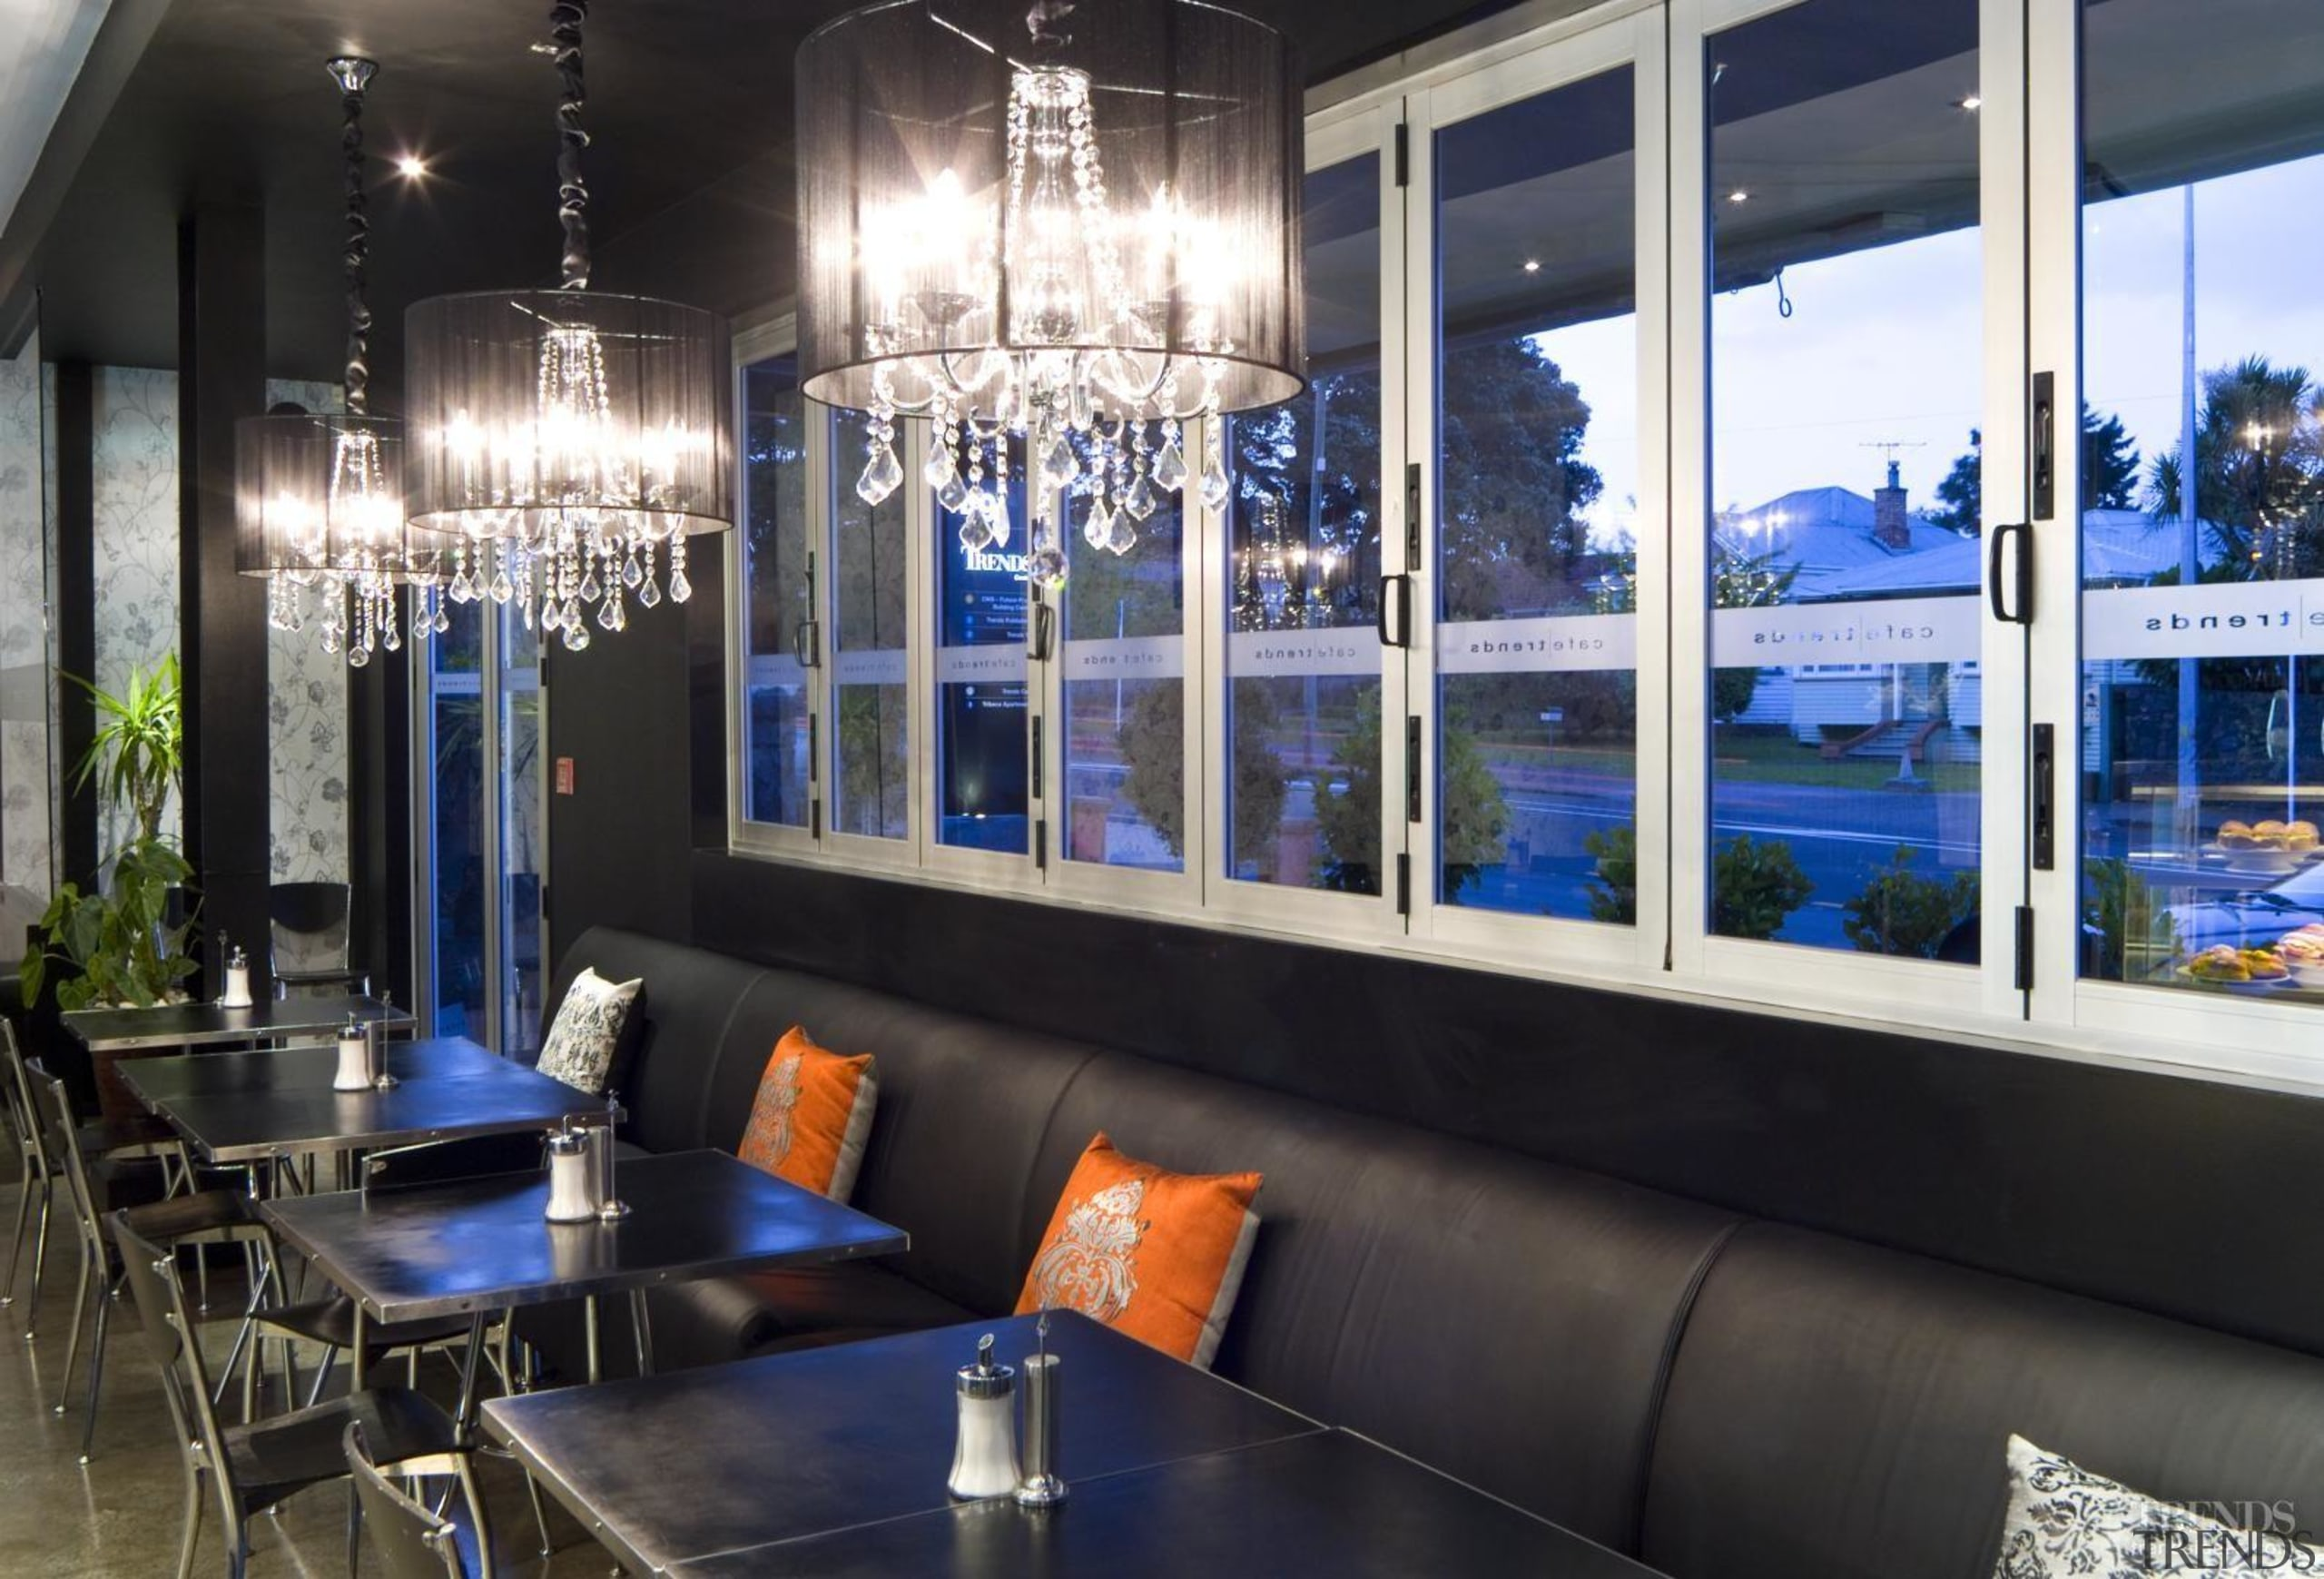 Durable and visually effective Resene paints were chosen interior design, window, black